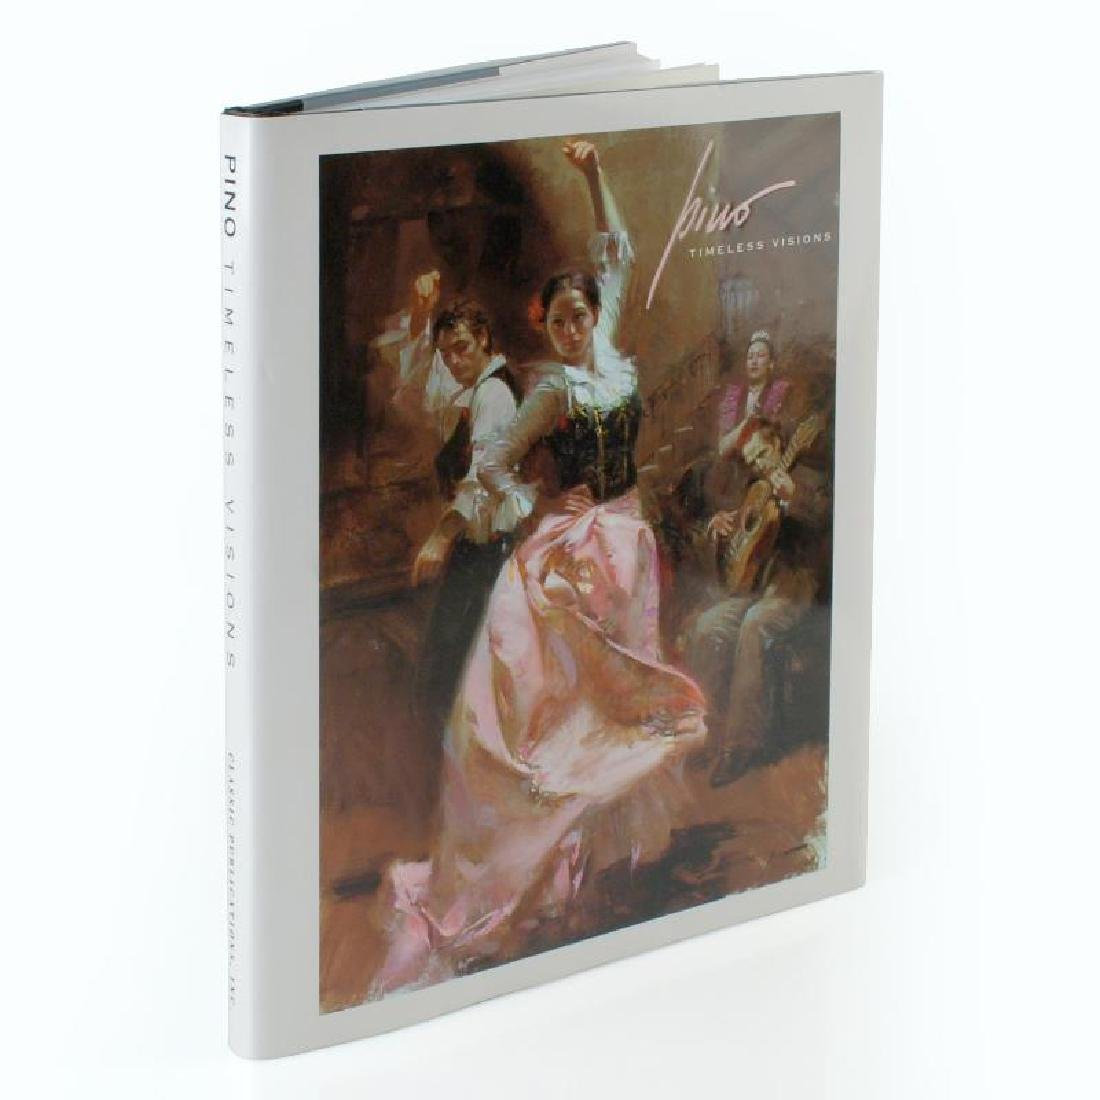 """""""Pino: Timeless Visions""""(2007) Fine Art Book with Text - 3"""